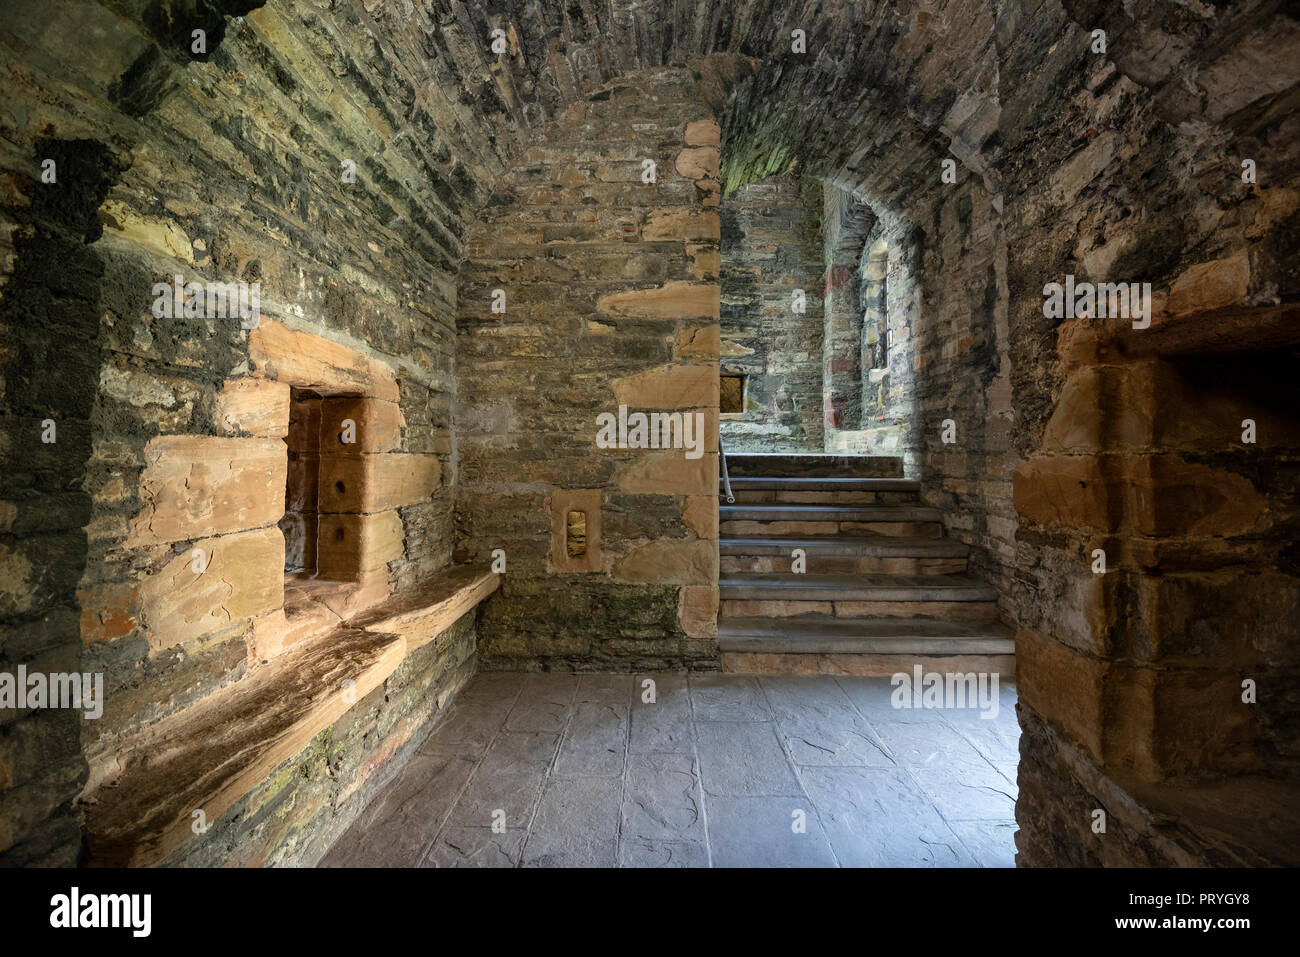 Earl's Palace Castle Ruin, Kirkwall, Mainland, Orkney Islands, Scotland, United Kingdom - Stock Image